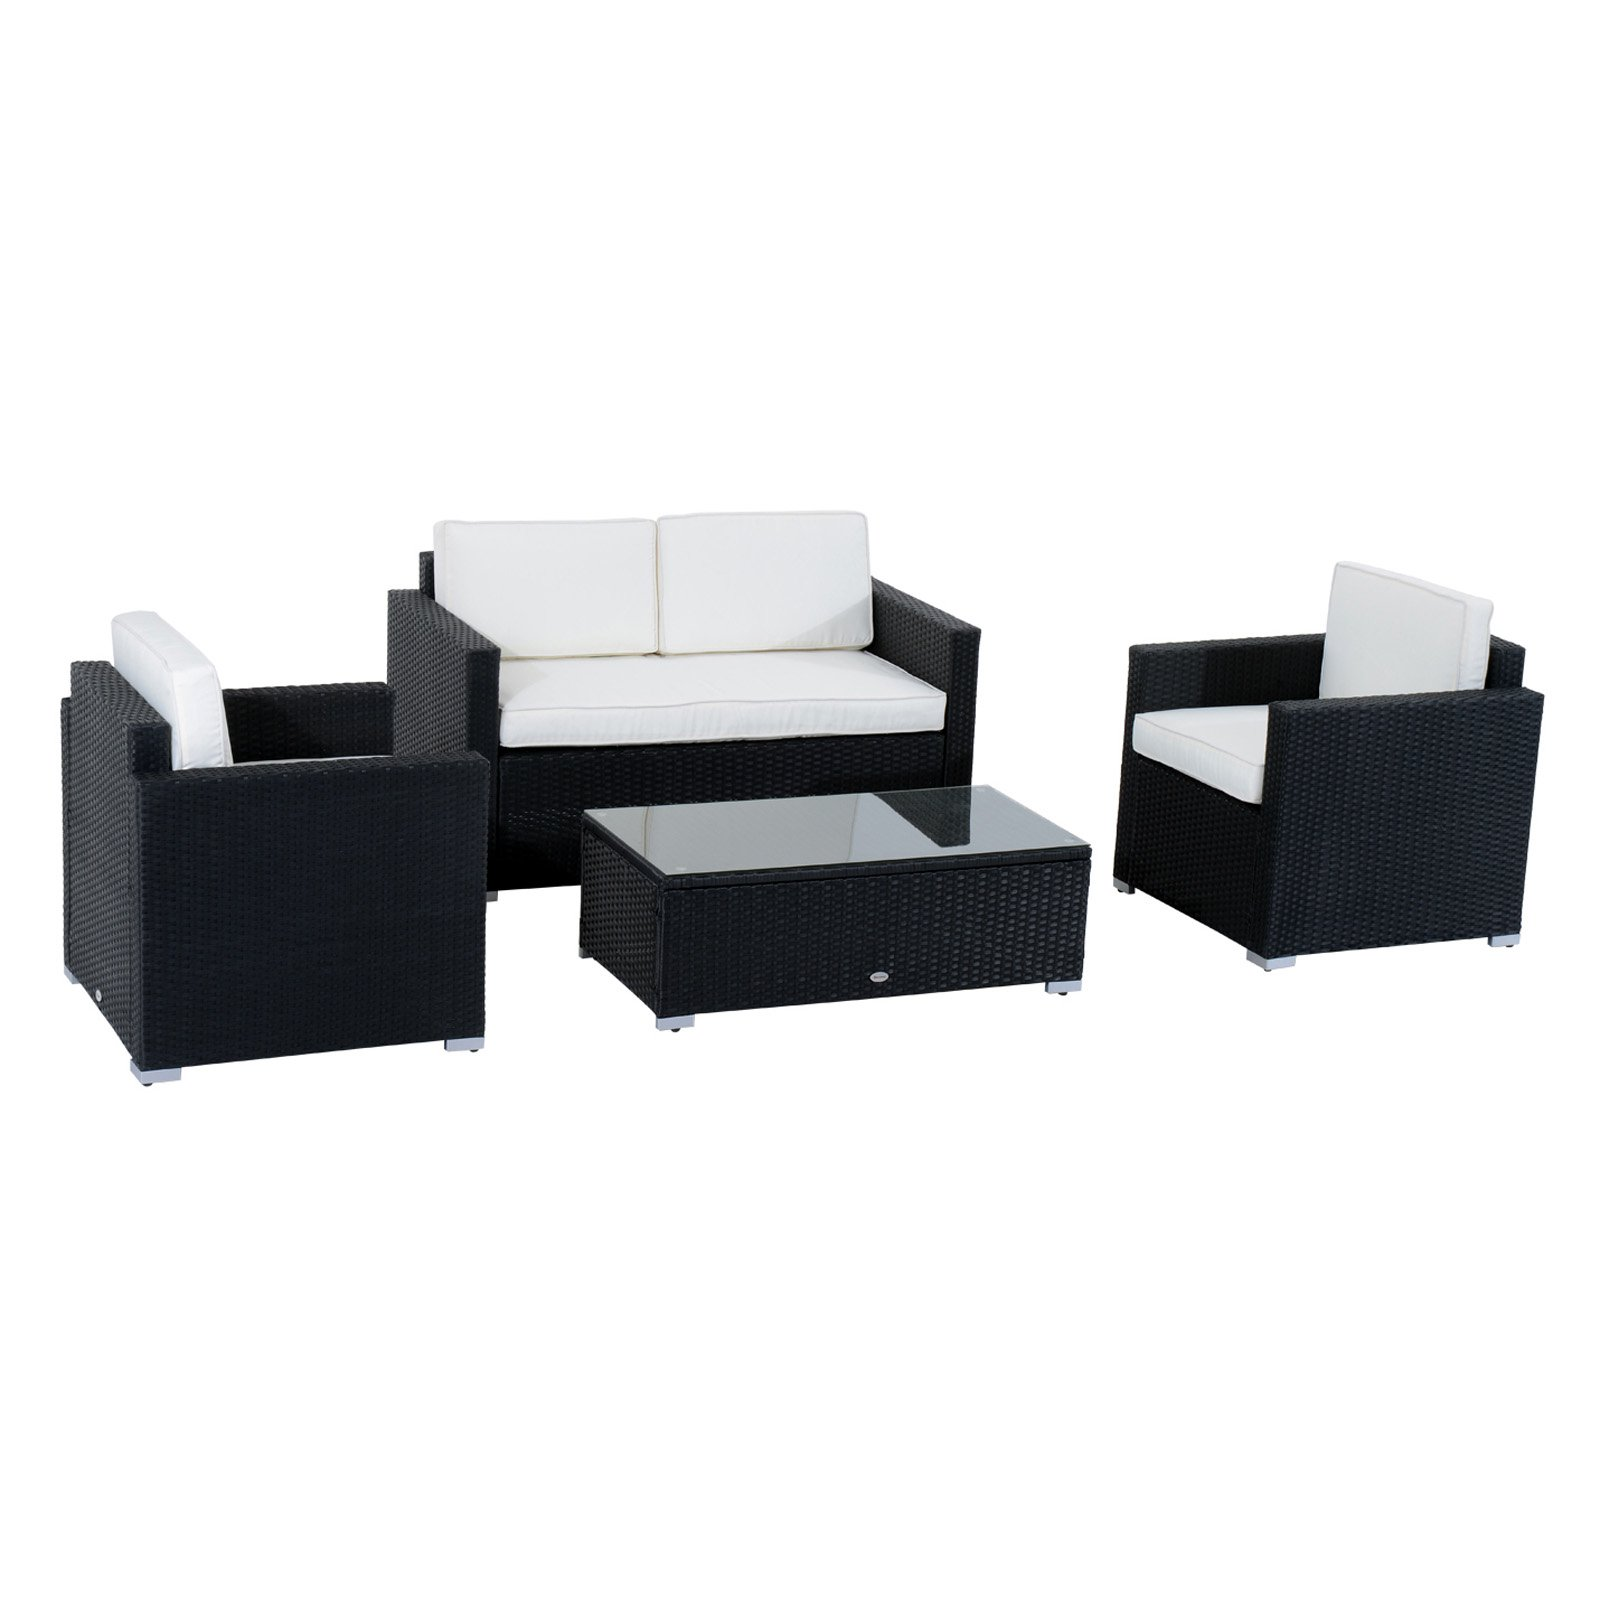 Sofa Rattan Outsunny 4 Piece Cushioned Outdoor Rattan Wicker Sofa Sectional Patio Furniture Set